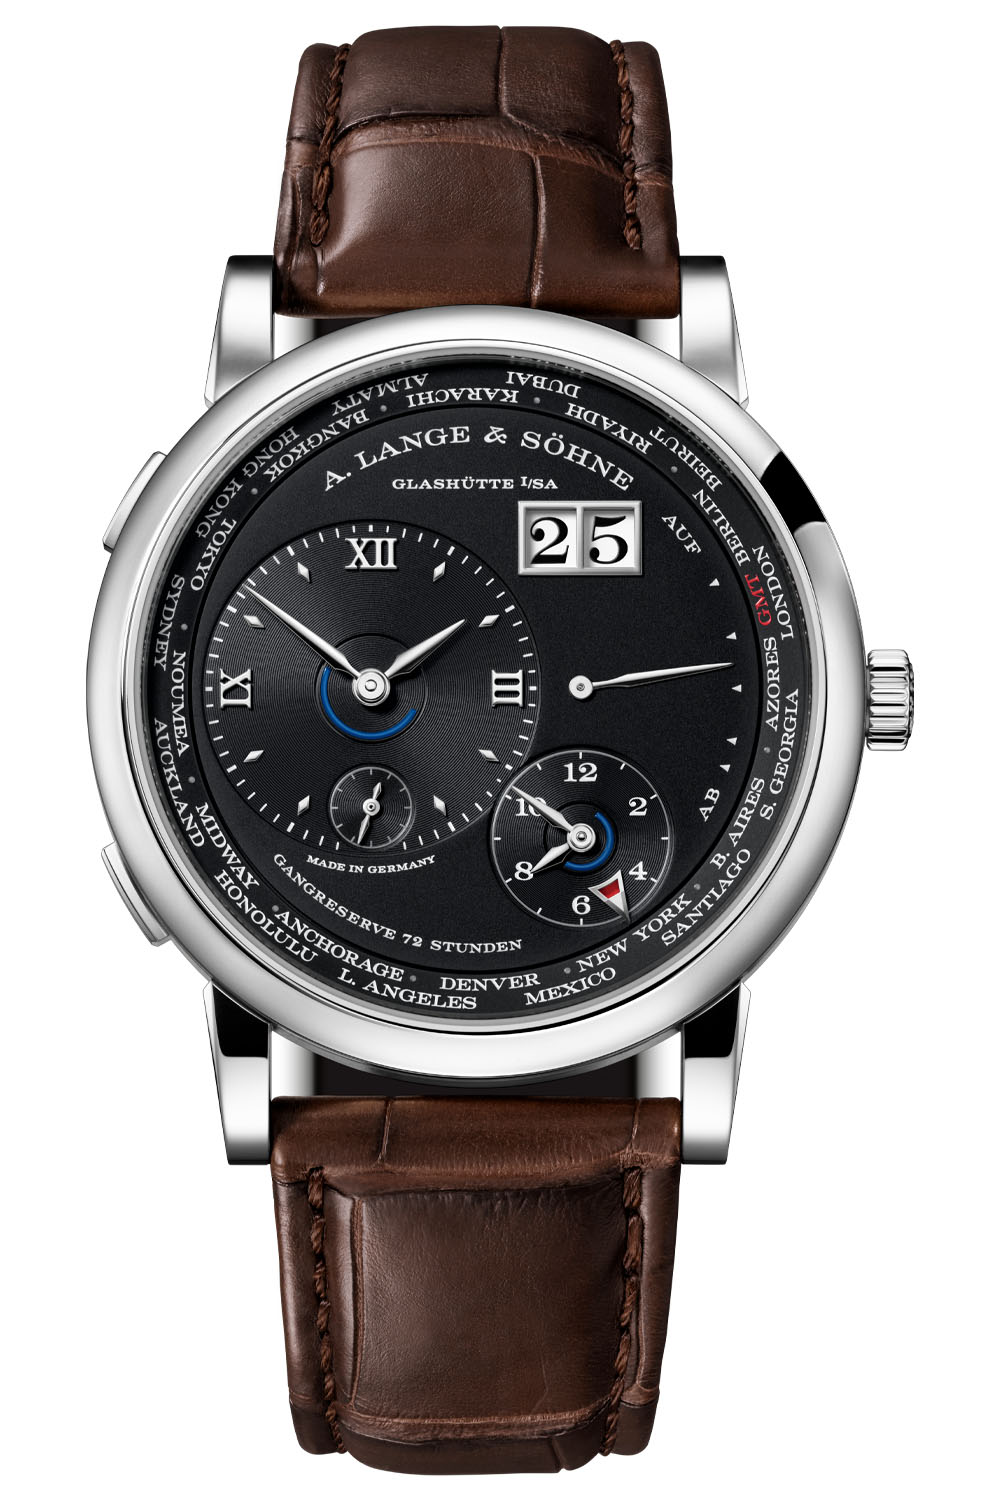 2020 A Lange Sohne Lange 1 Time Zone white gold black dial 136.029